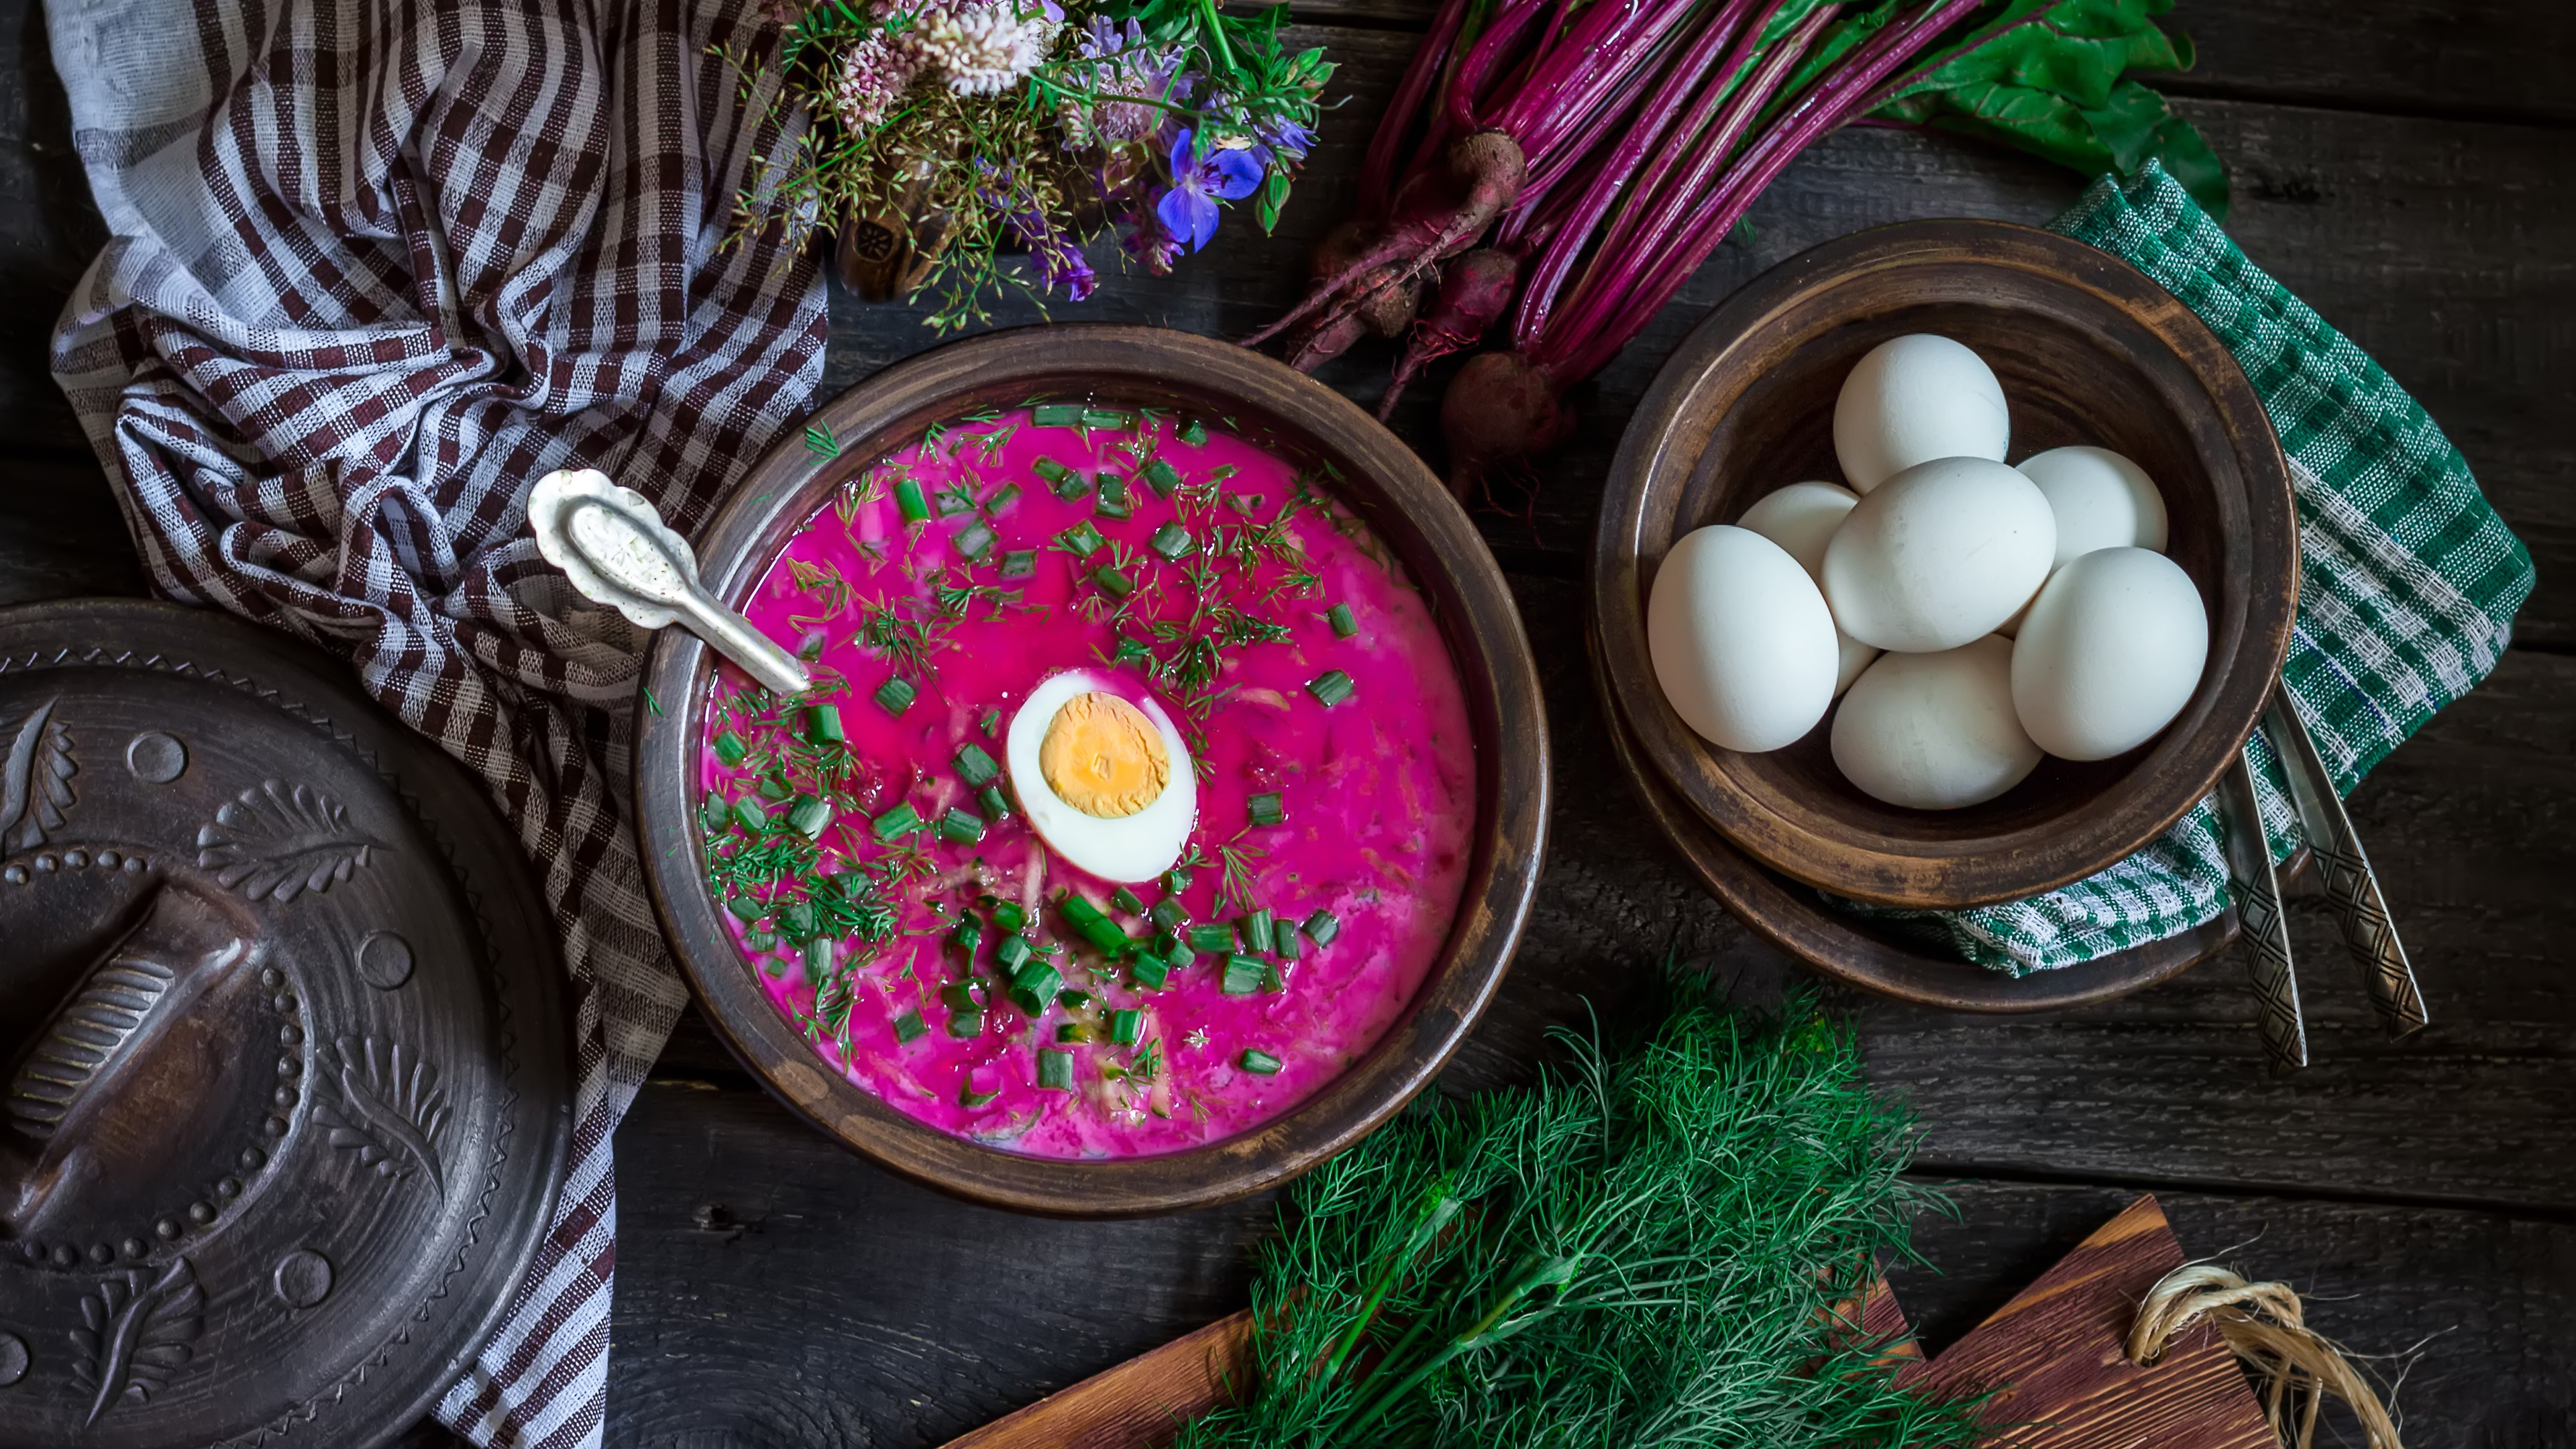 Beetroot soup with boiled egg wallpaper